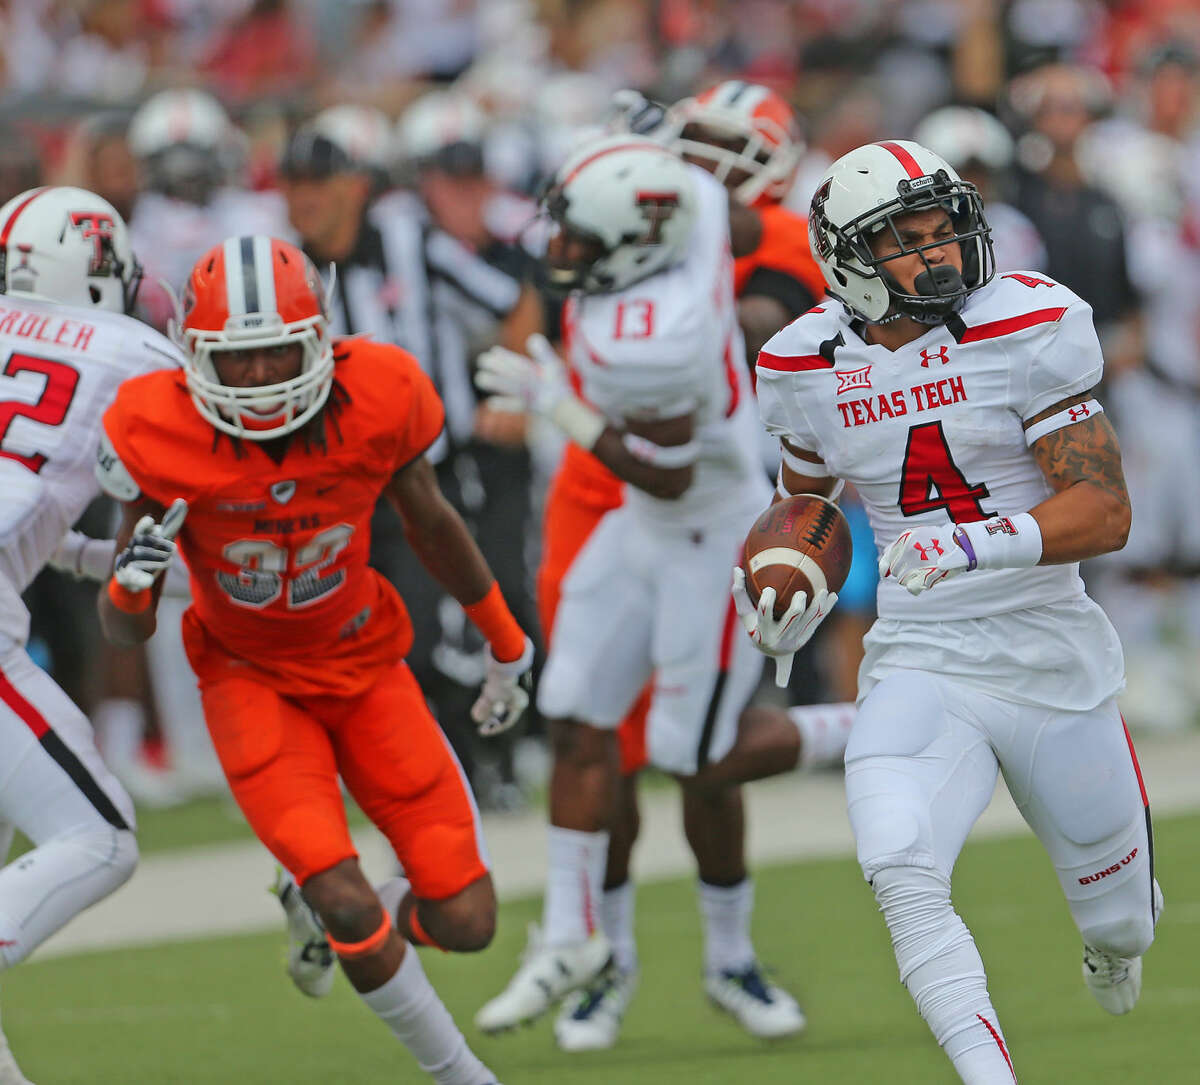 Tech running back Justin Stockton (4) checks over his shoulder to make sure no one is gaining on him as he races to the end zone in Saturday's game with the UTEP Miners.